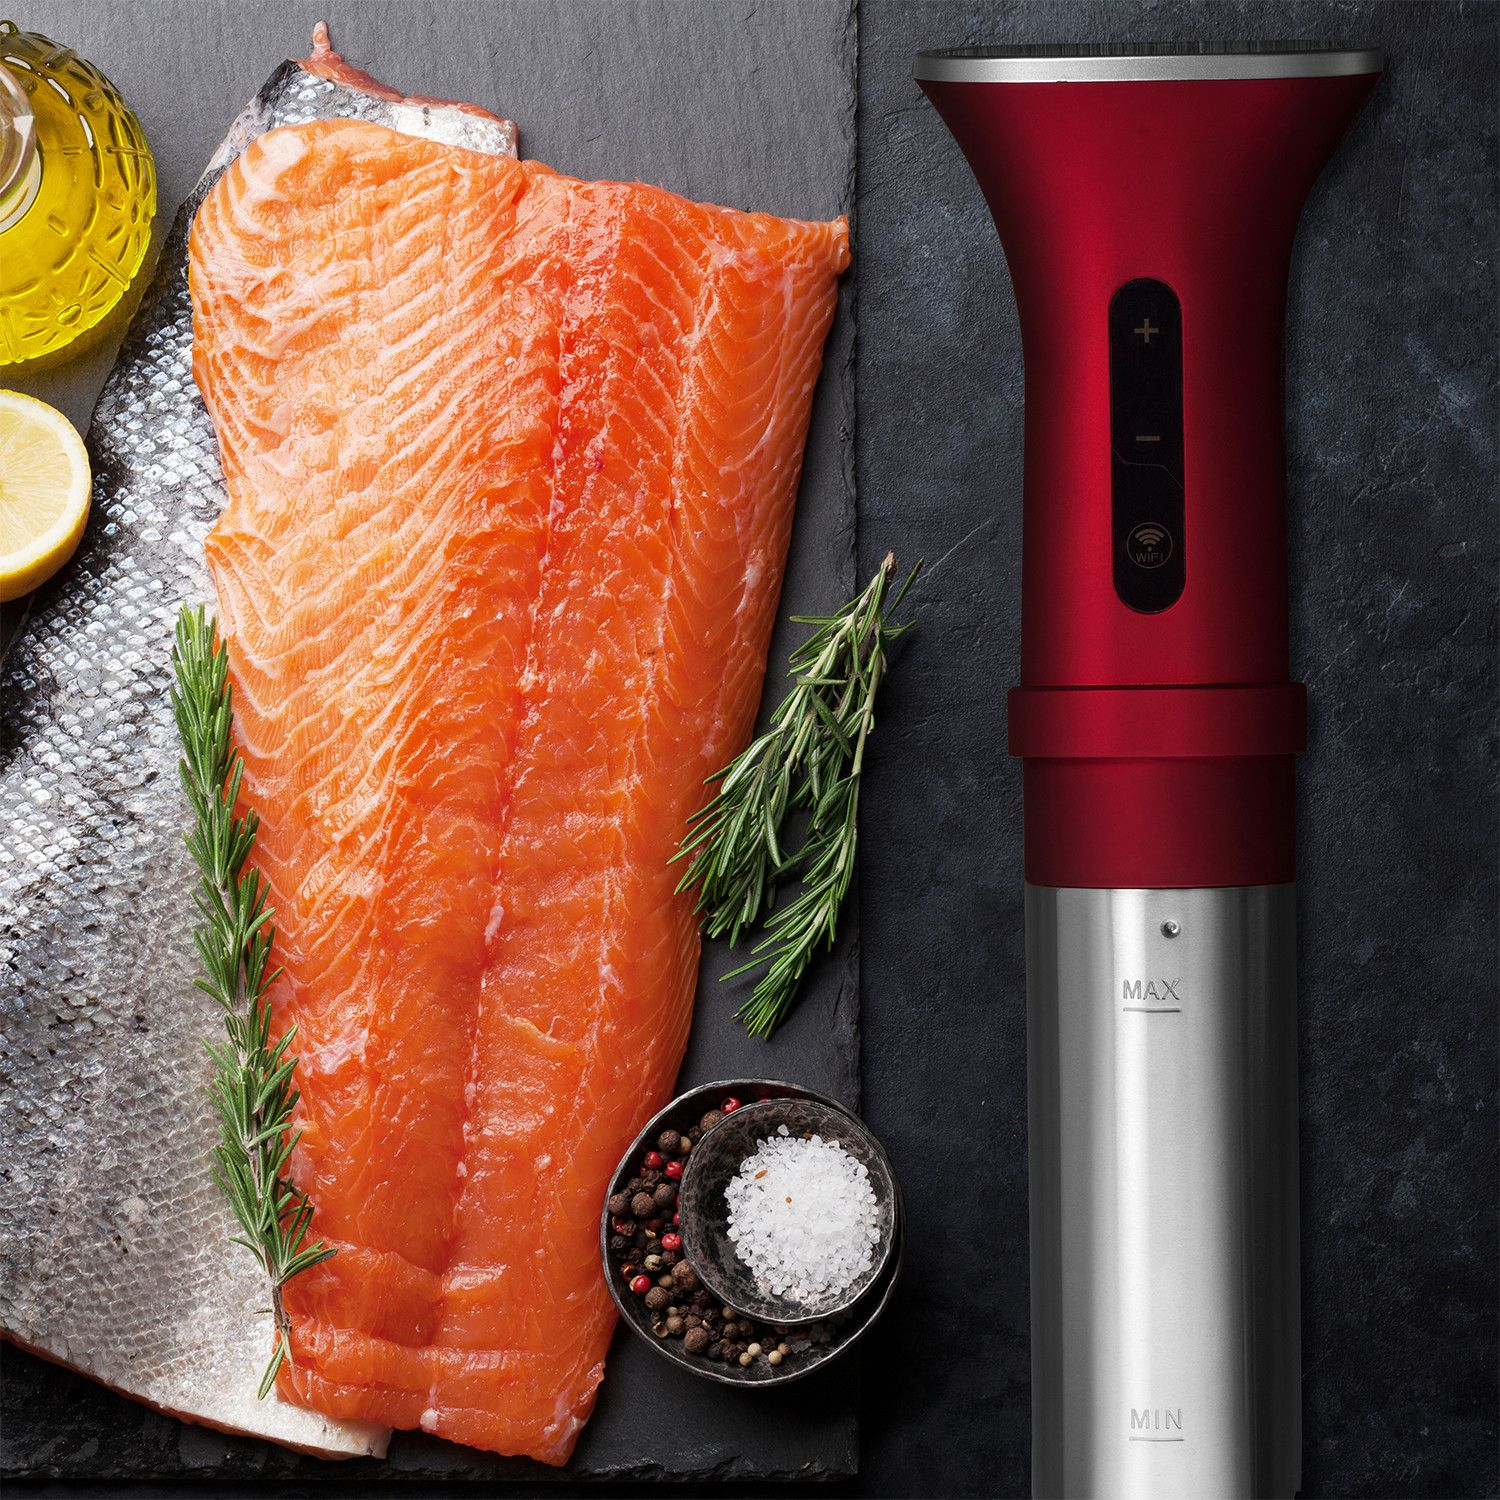 Sous Vide Wifi In 2020 Healthy Meals To Cook Sous Vide Cooking Techniques